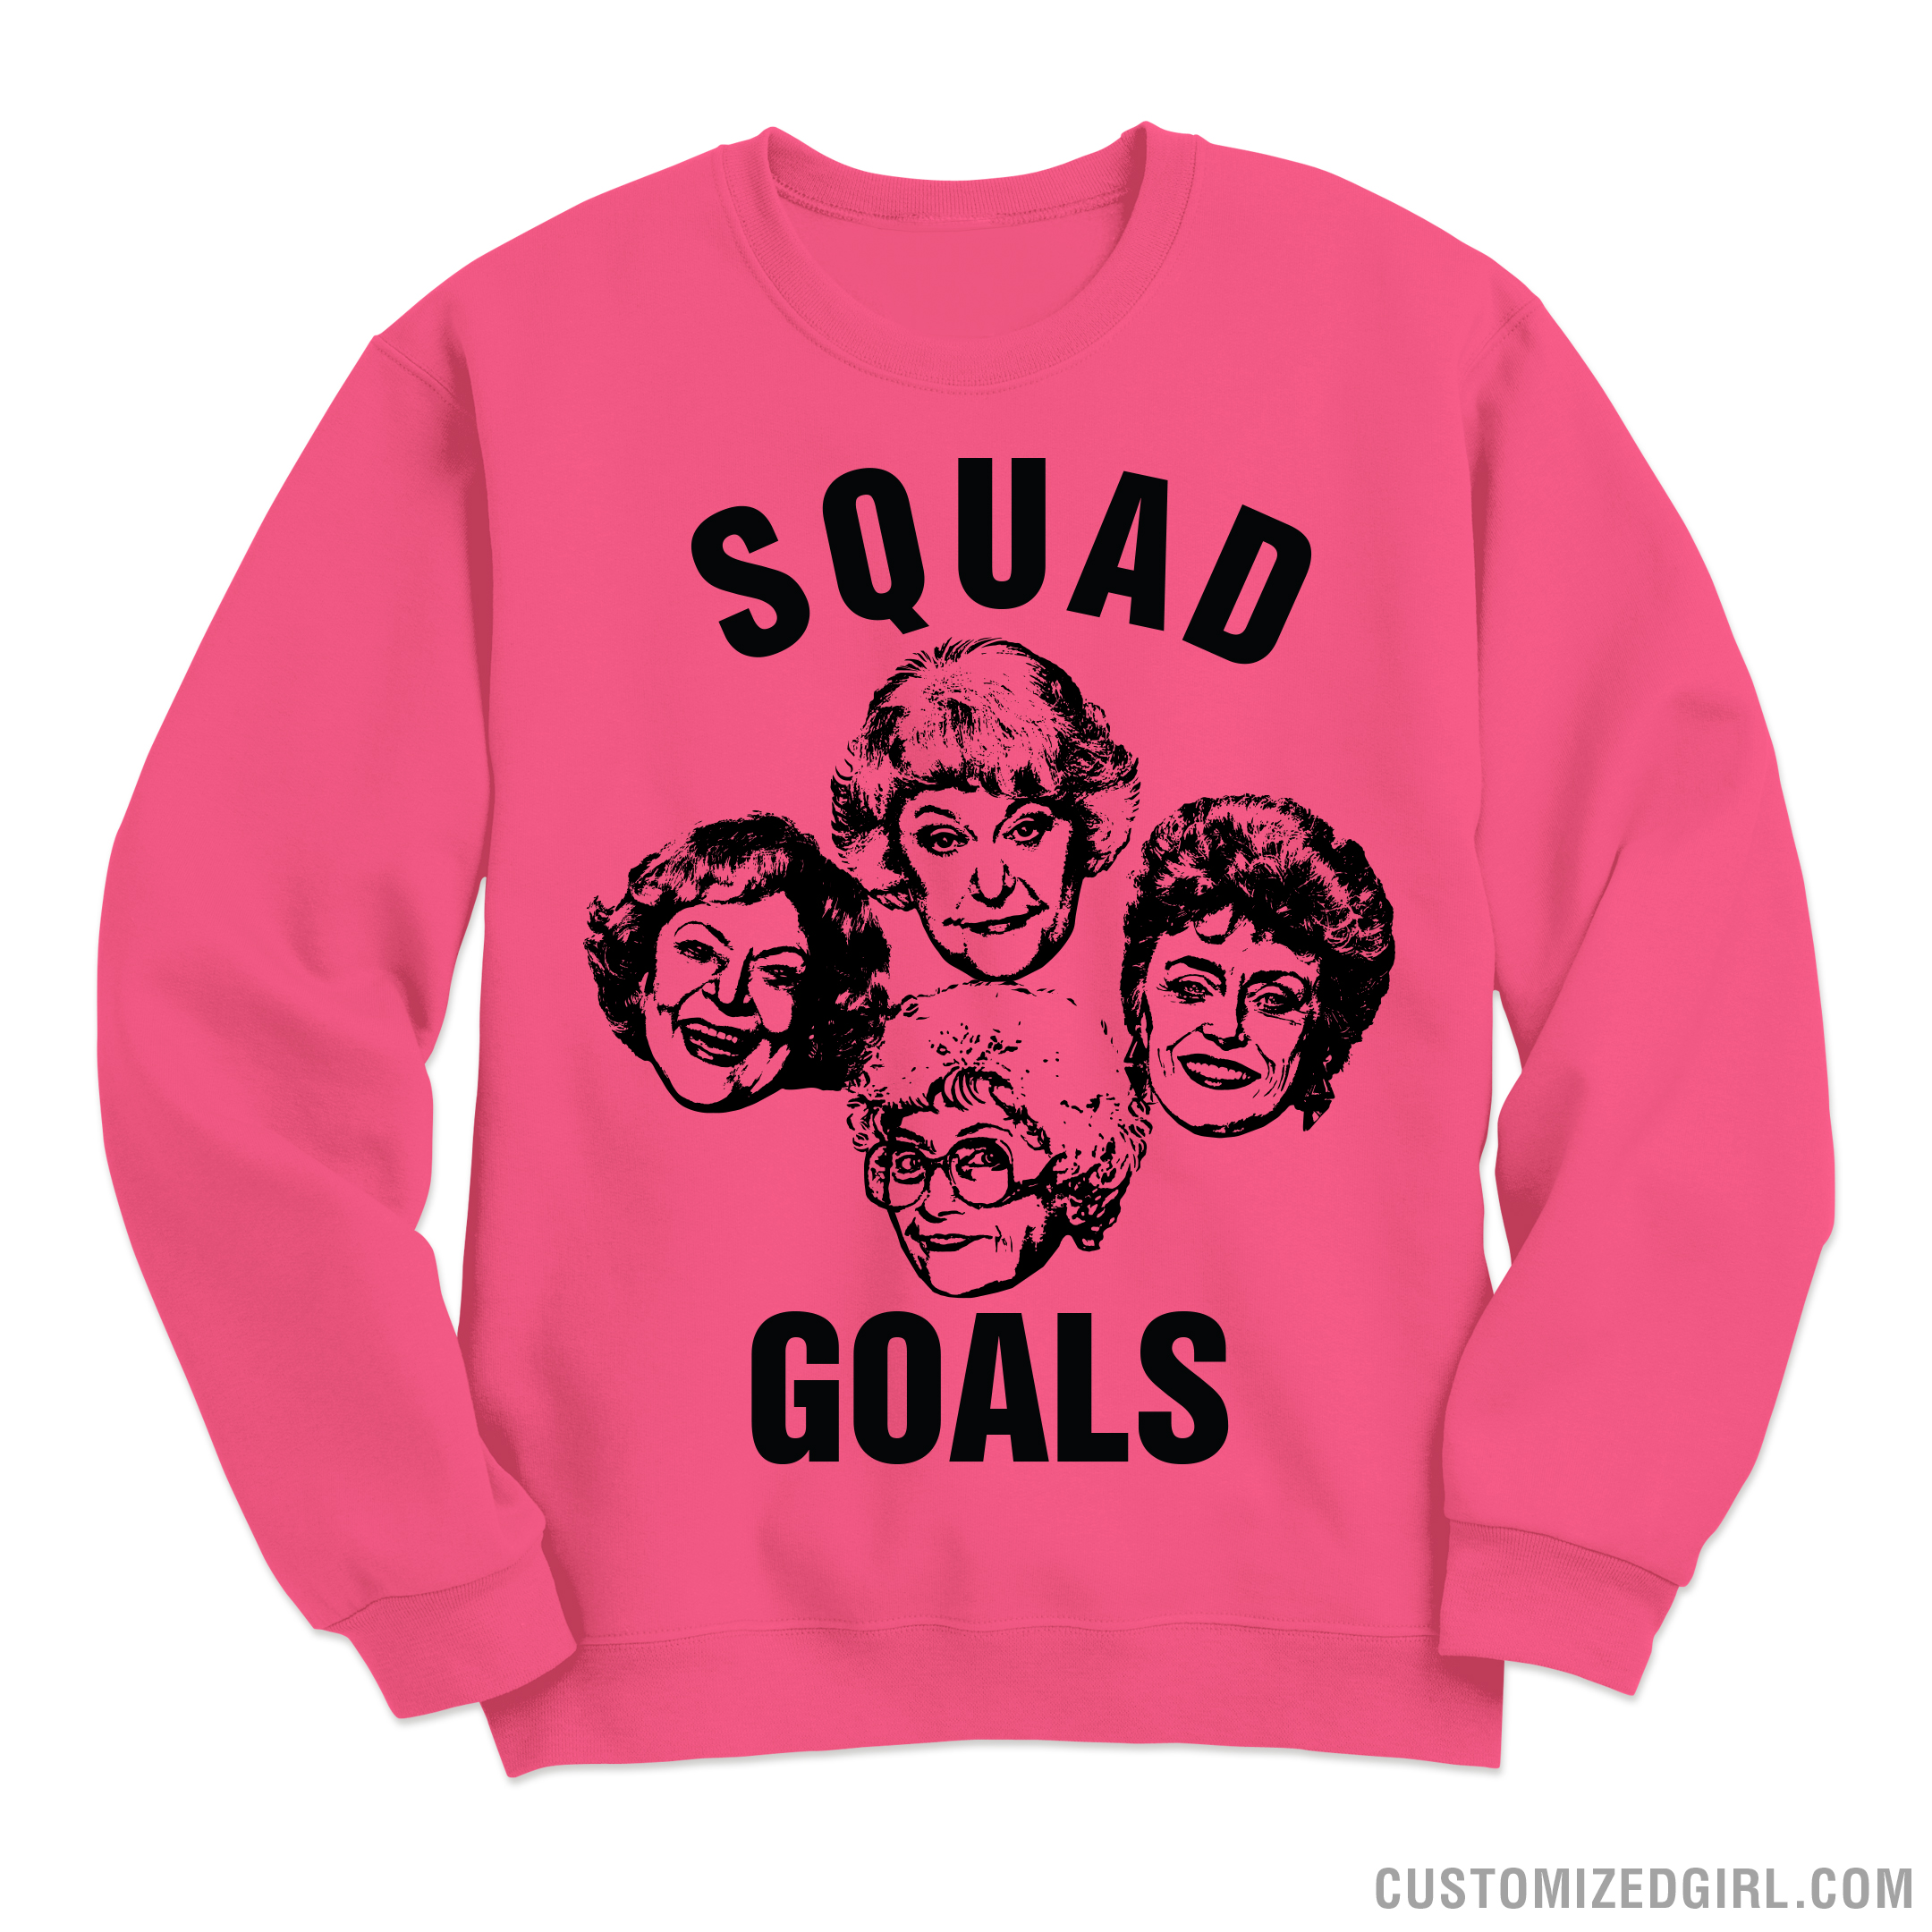 Golden Girls Sweatshirts